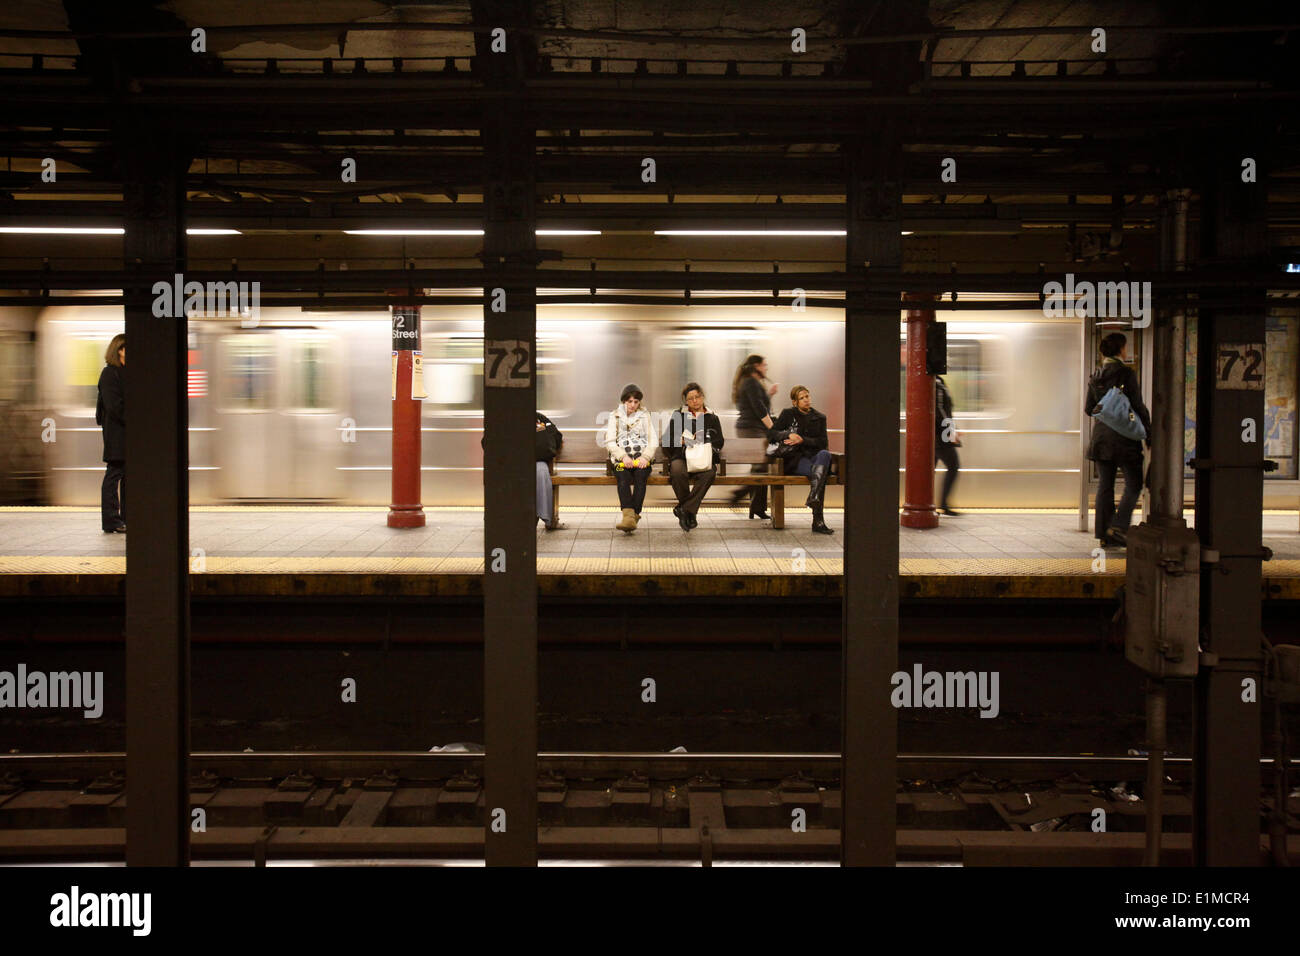 New York subway station - Stock Image